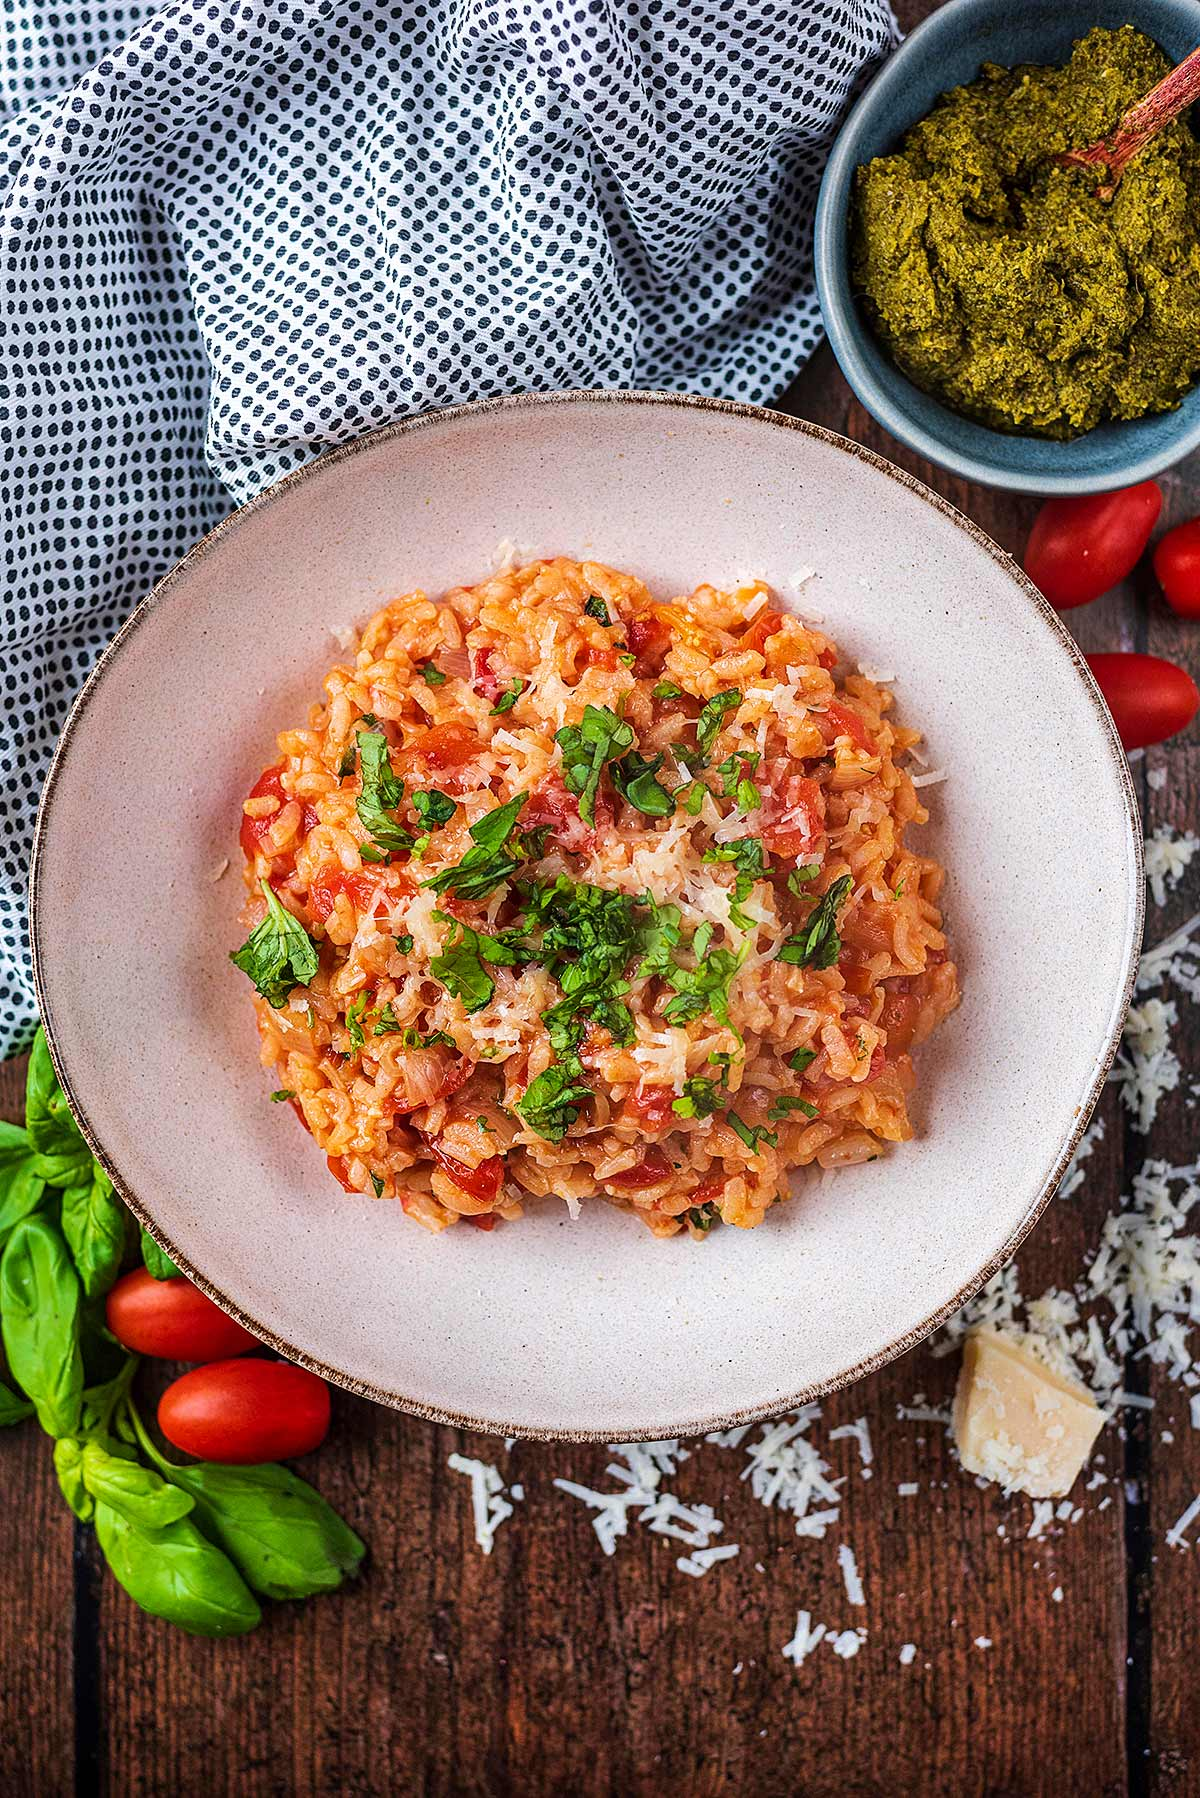 Tomato risotto in a large bowl next to a bowl of pesto.